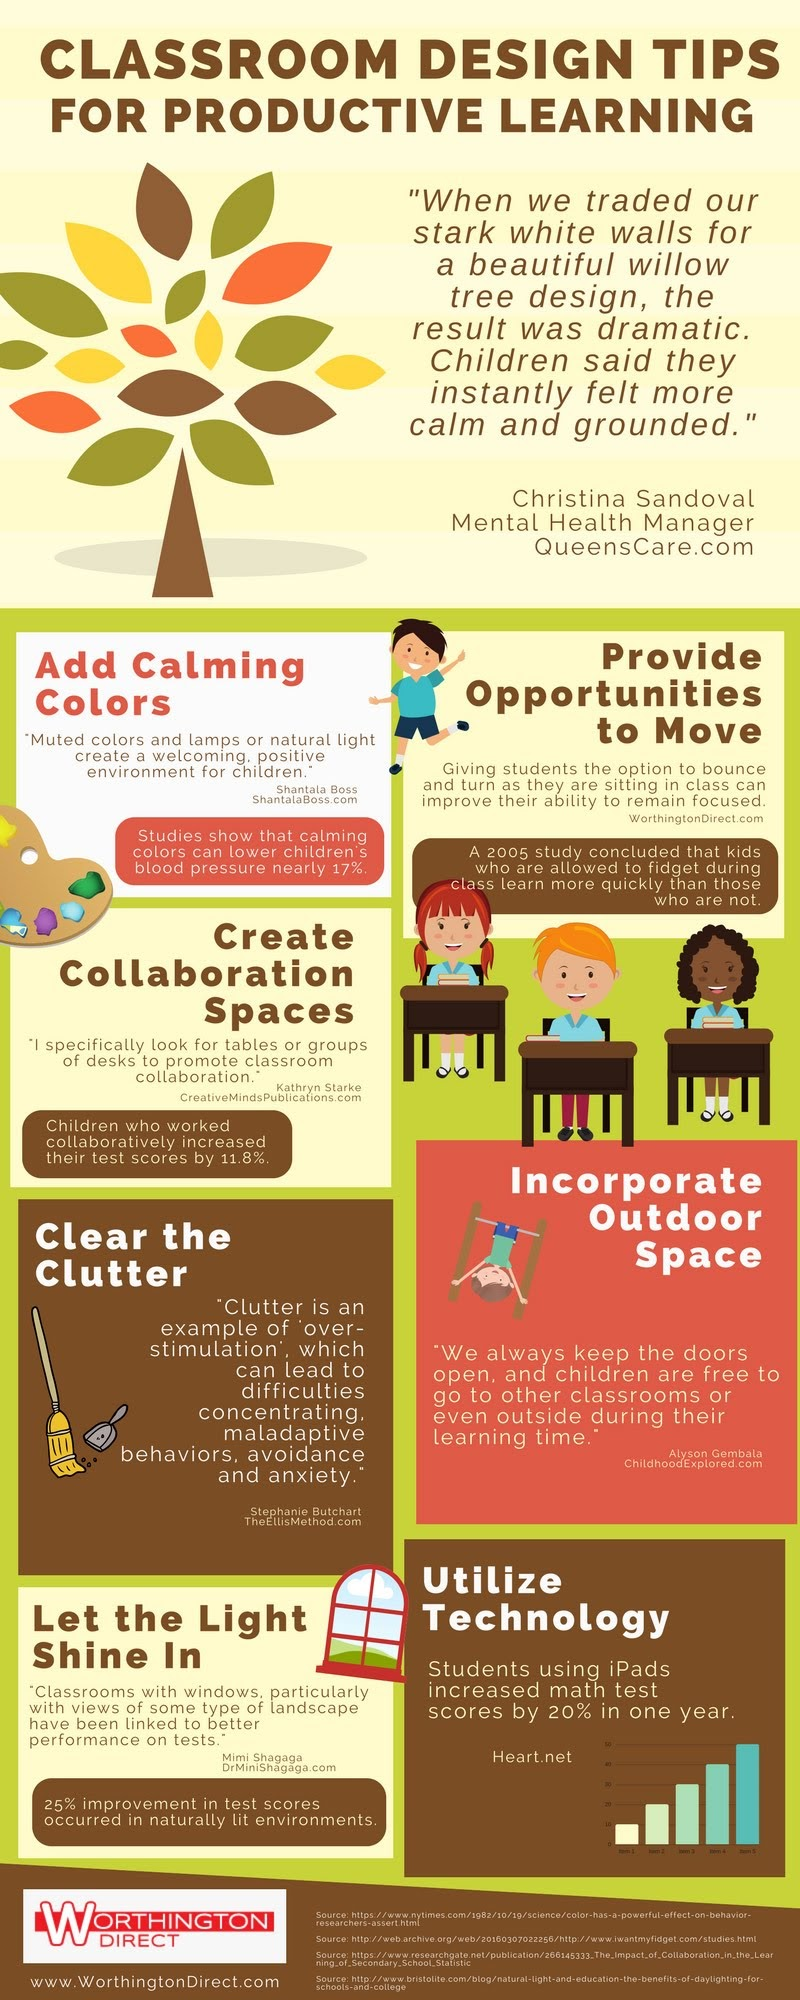 Classroom Design Techniques ~ Classroom design tips for productive learning infographic